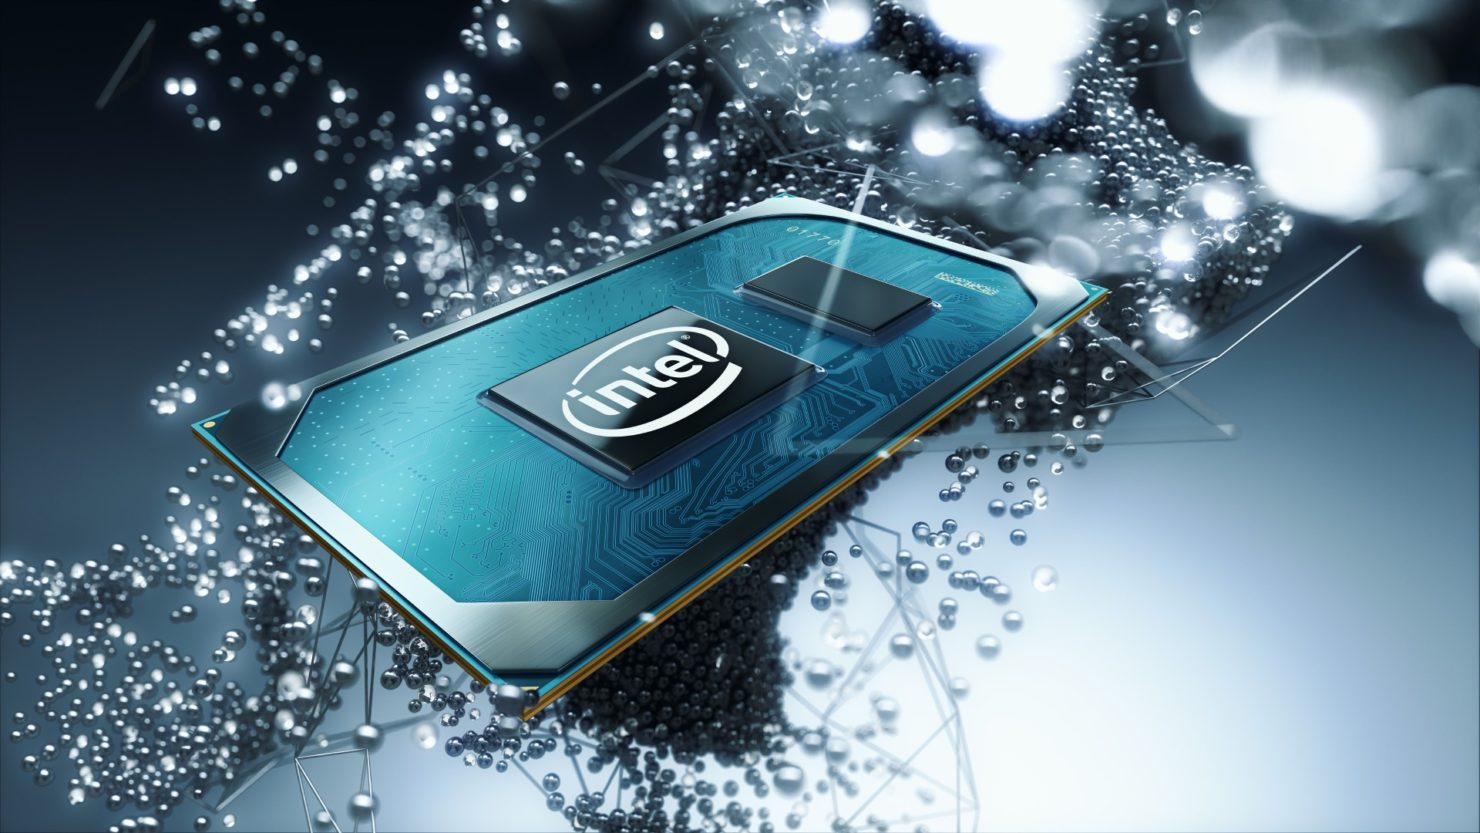 intel-core-i7-11800h-8-core-tiger-lake-h-high-end-cpu-benchmarks-leak-out,-much-faster-than-amd-ryzen-7-5800h